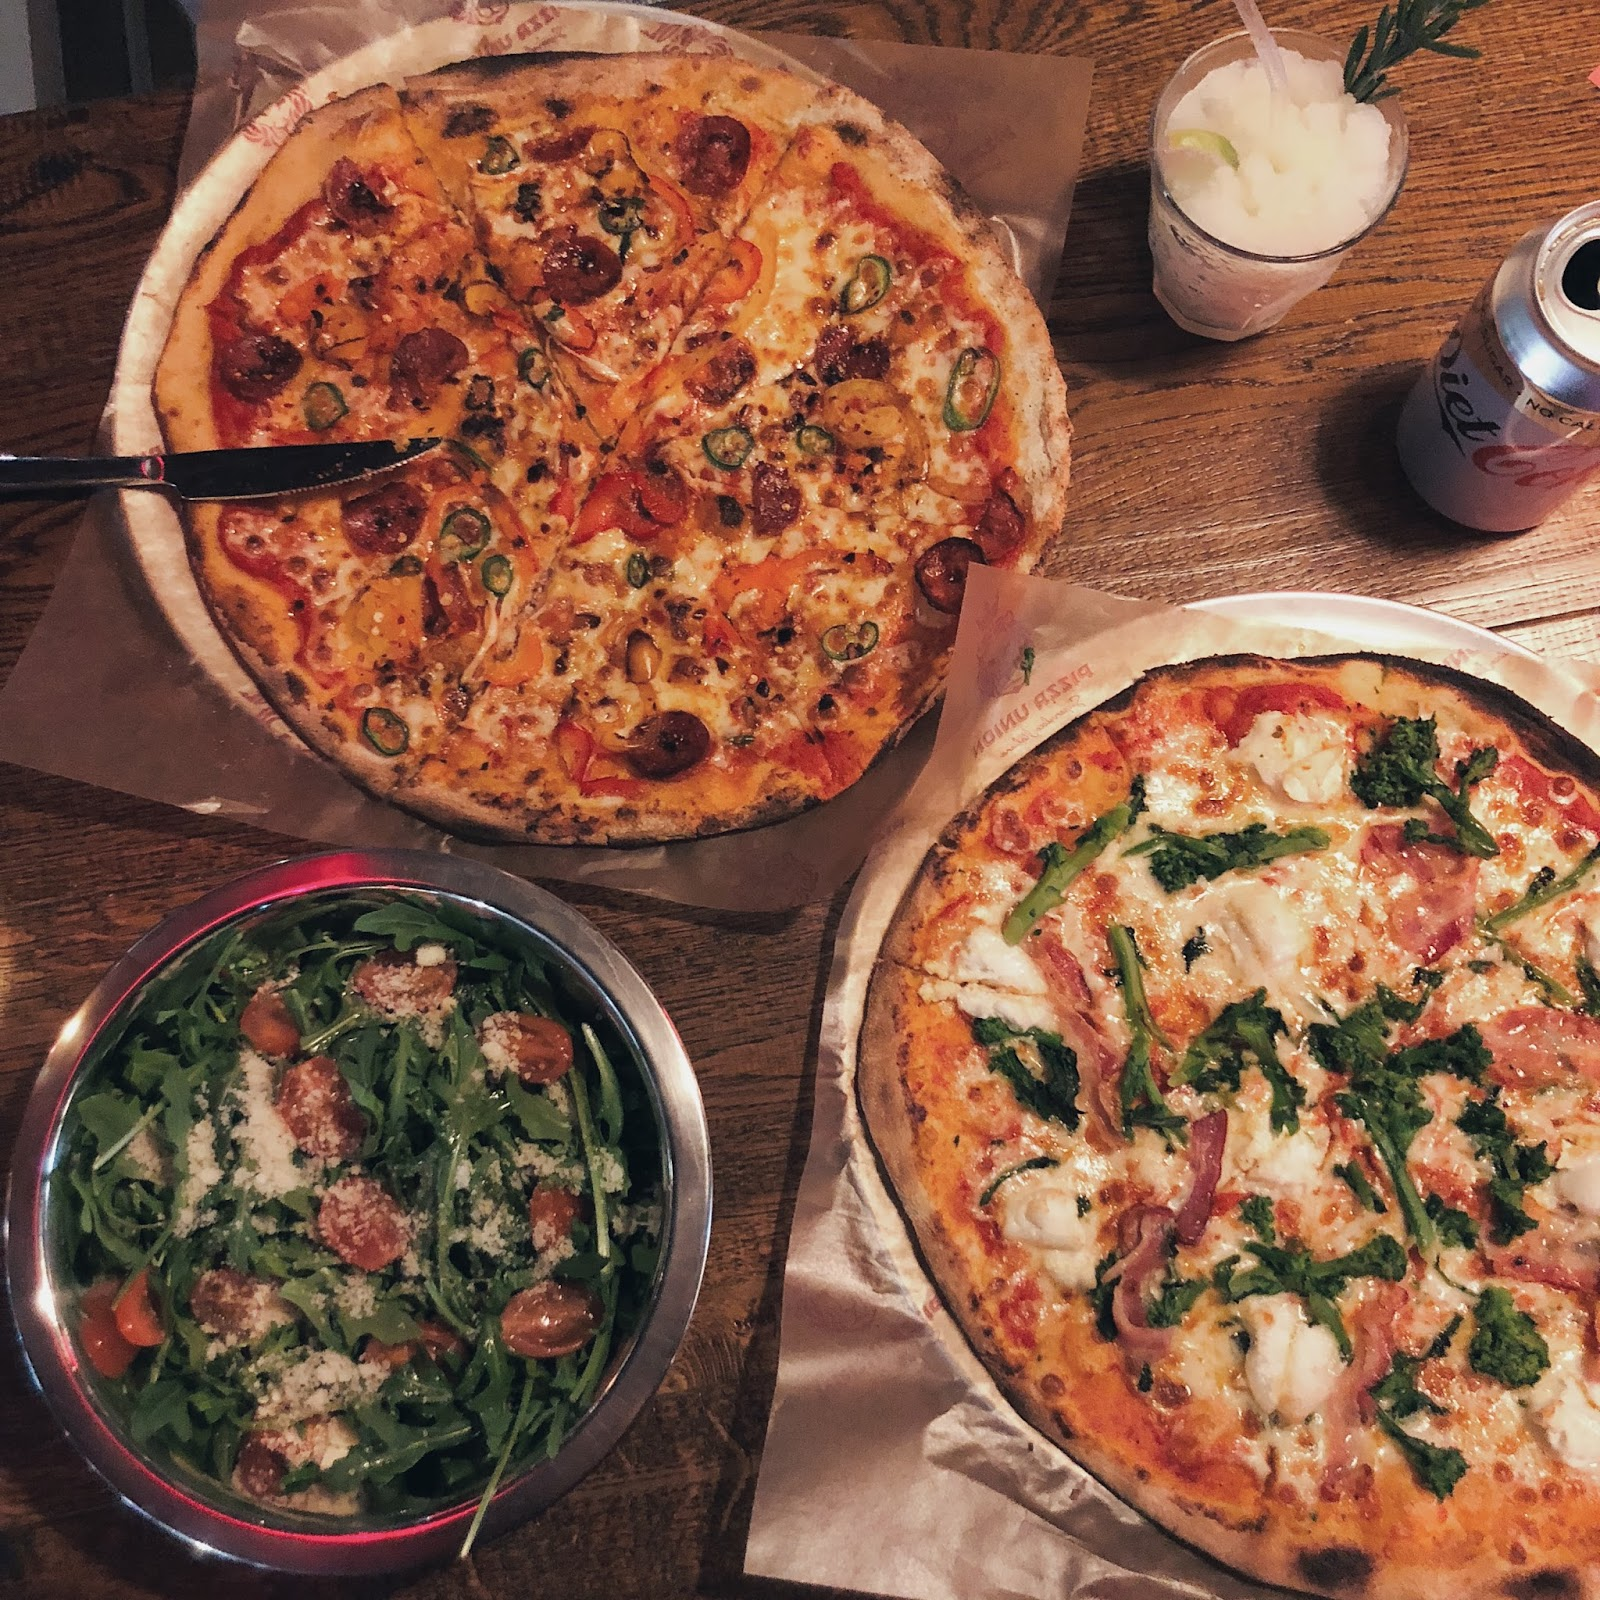 Selection of pizzas and salad